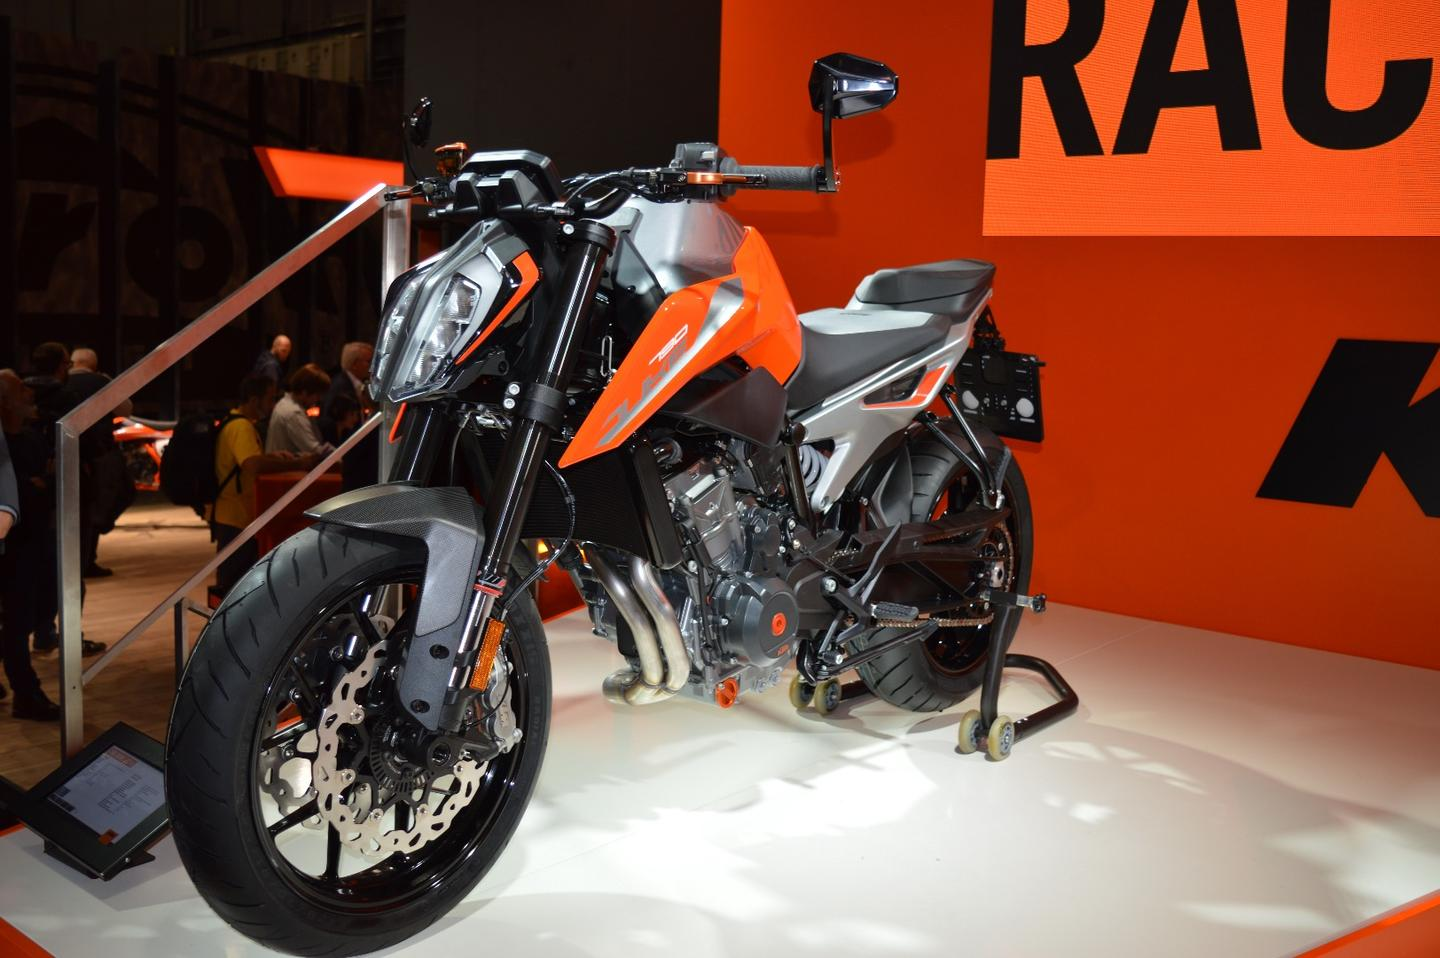 The new KTM Duke 790 unveiled at the 2017 EICMA Motorcycle Show